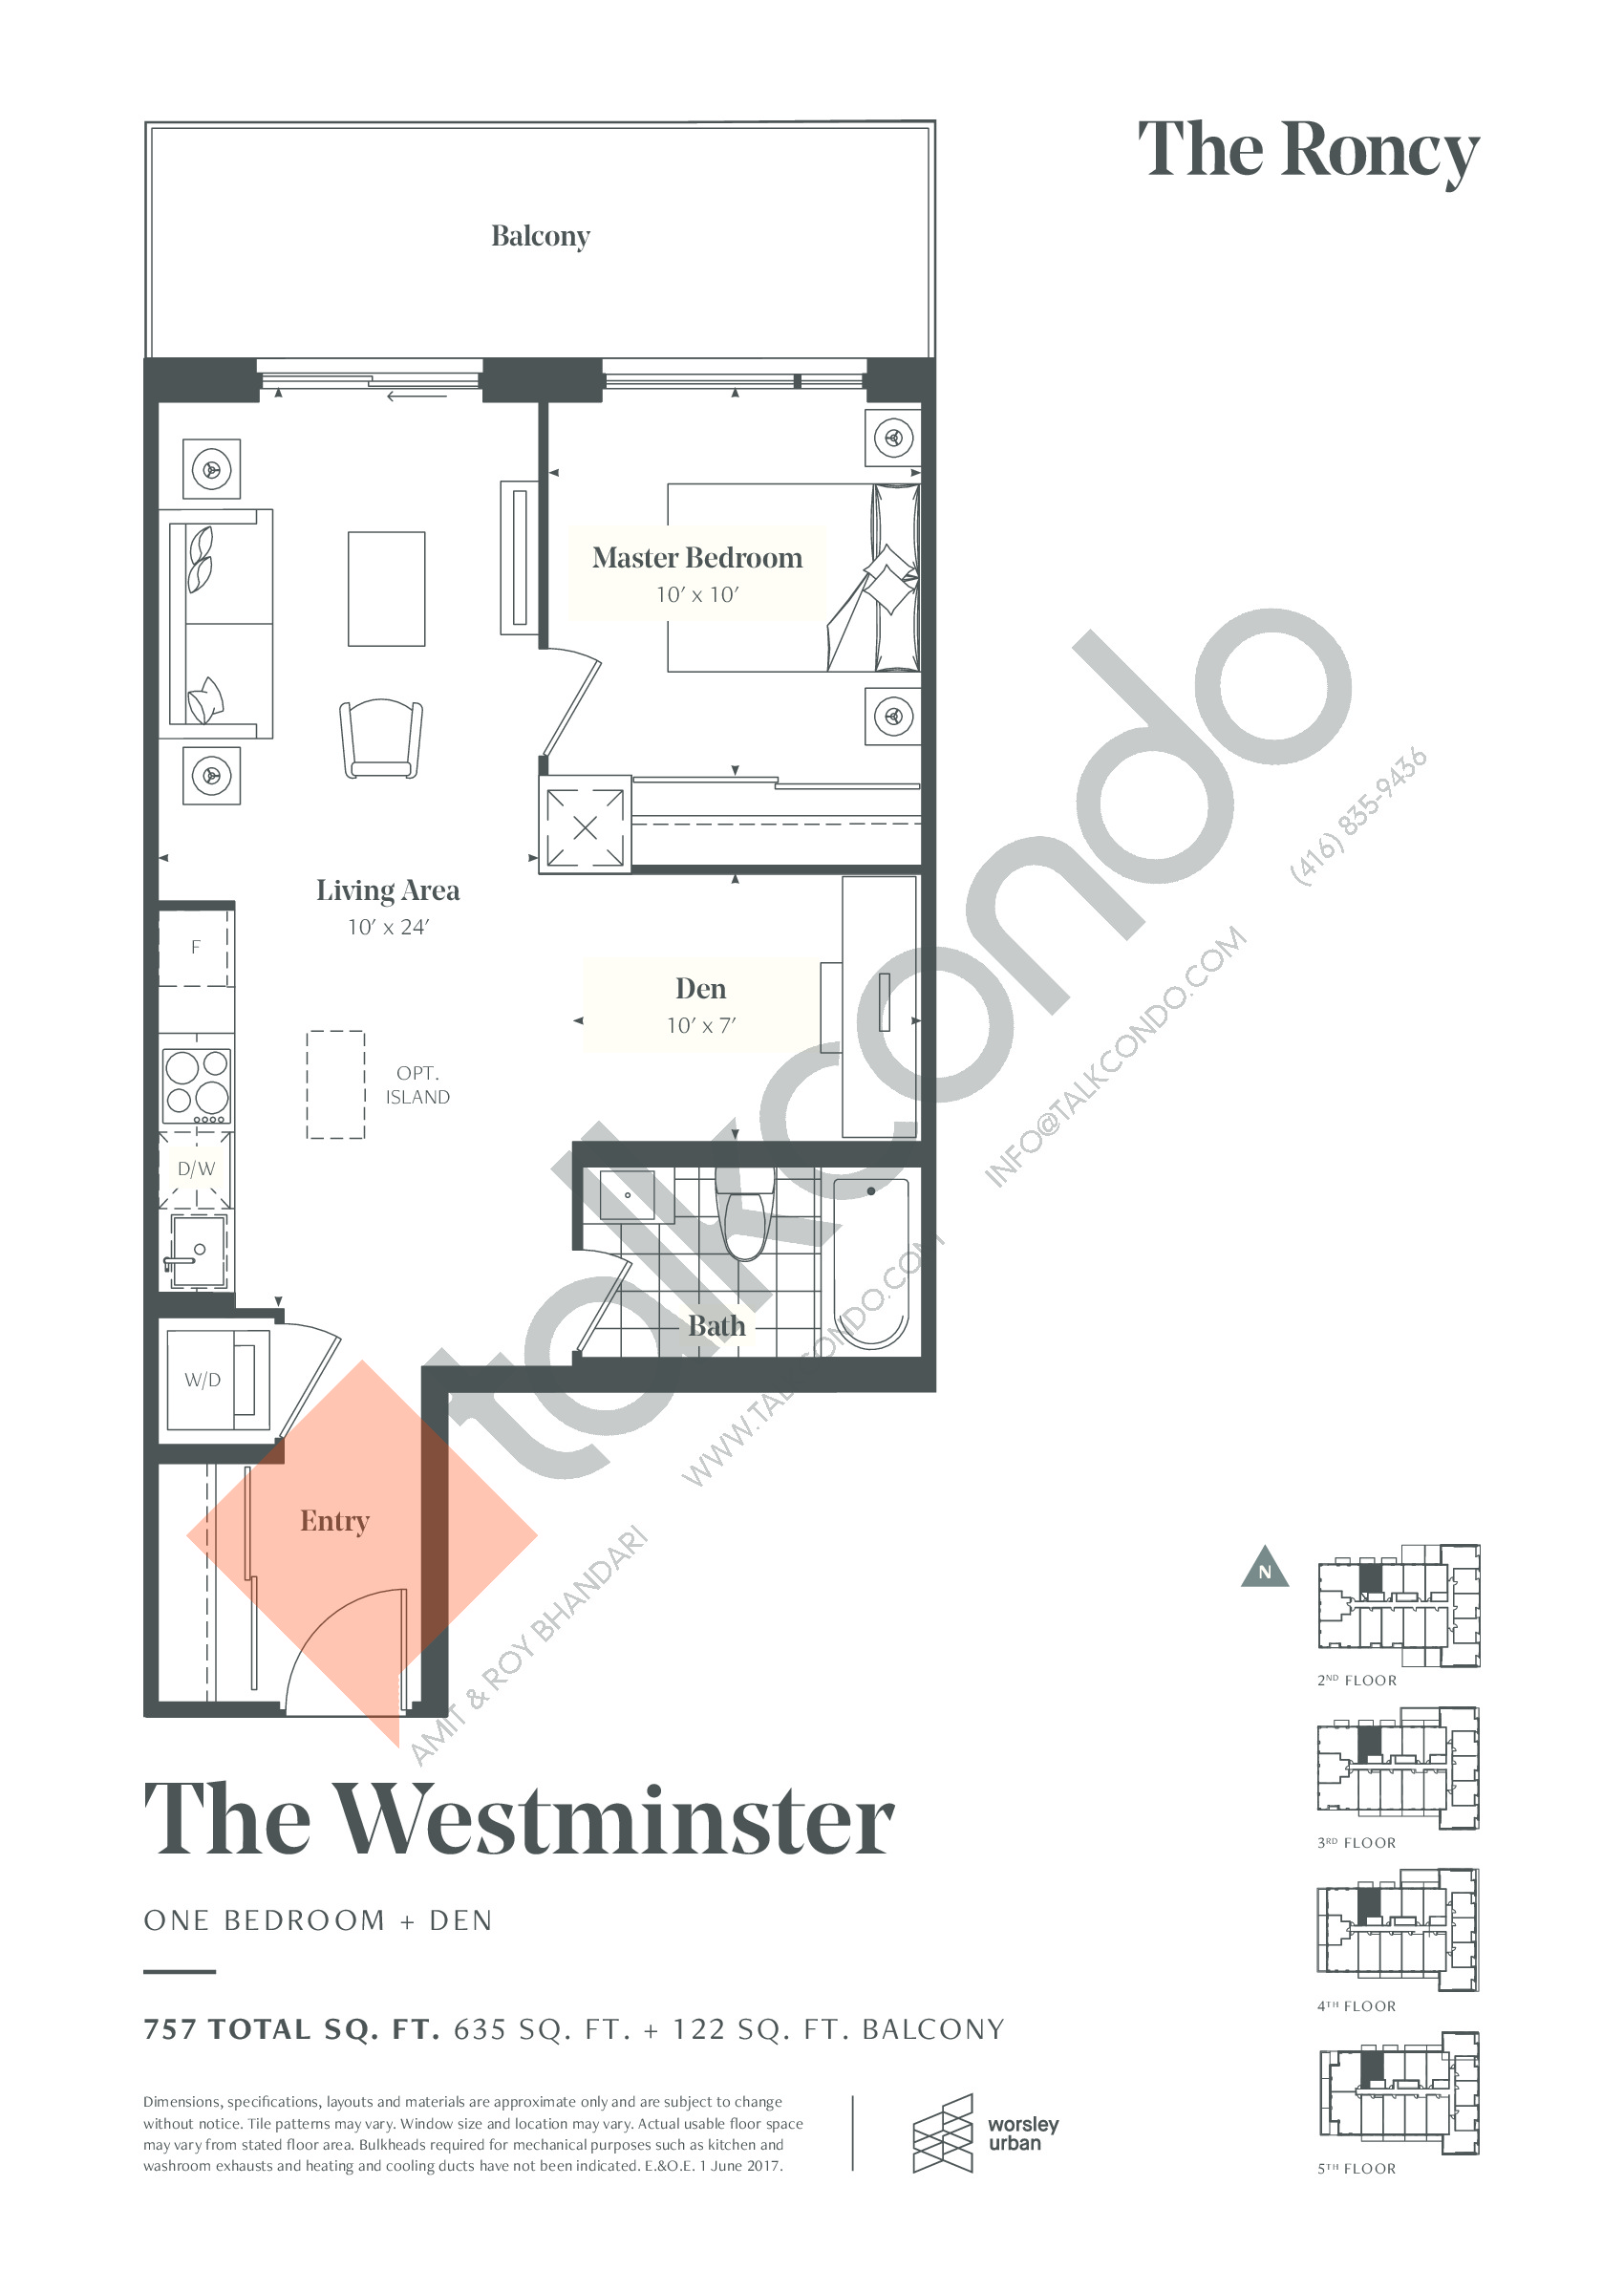 The Westminster Floor Plan at The Roncy Condos - 635 sq.ft